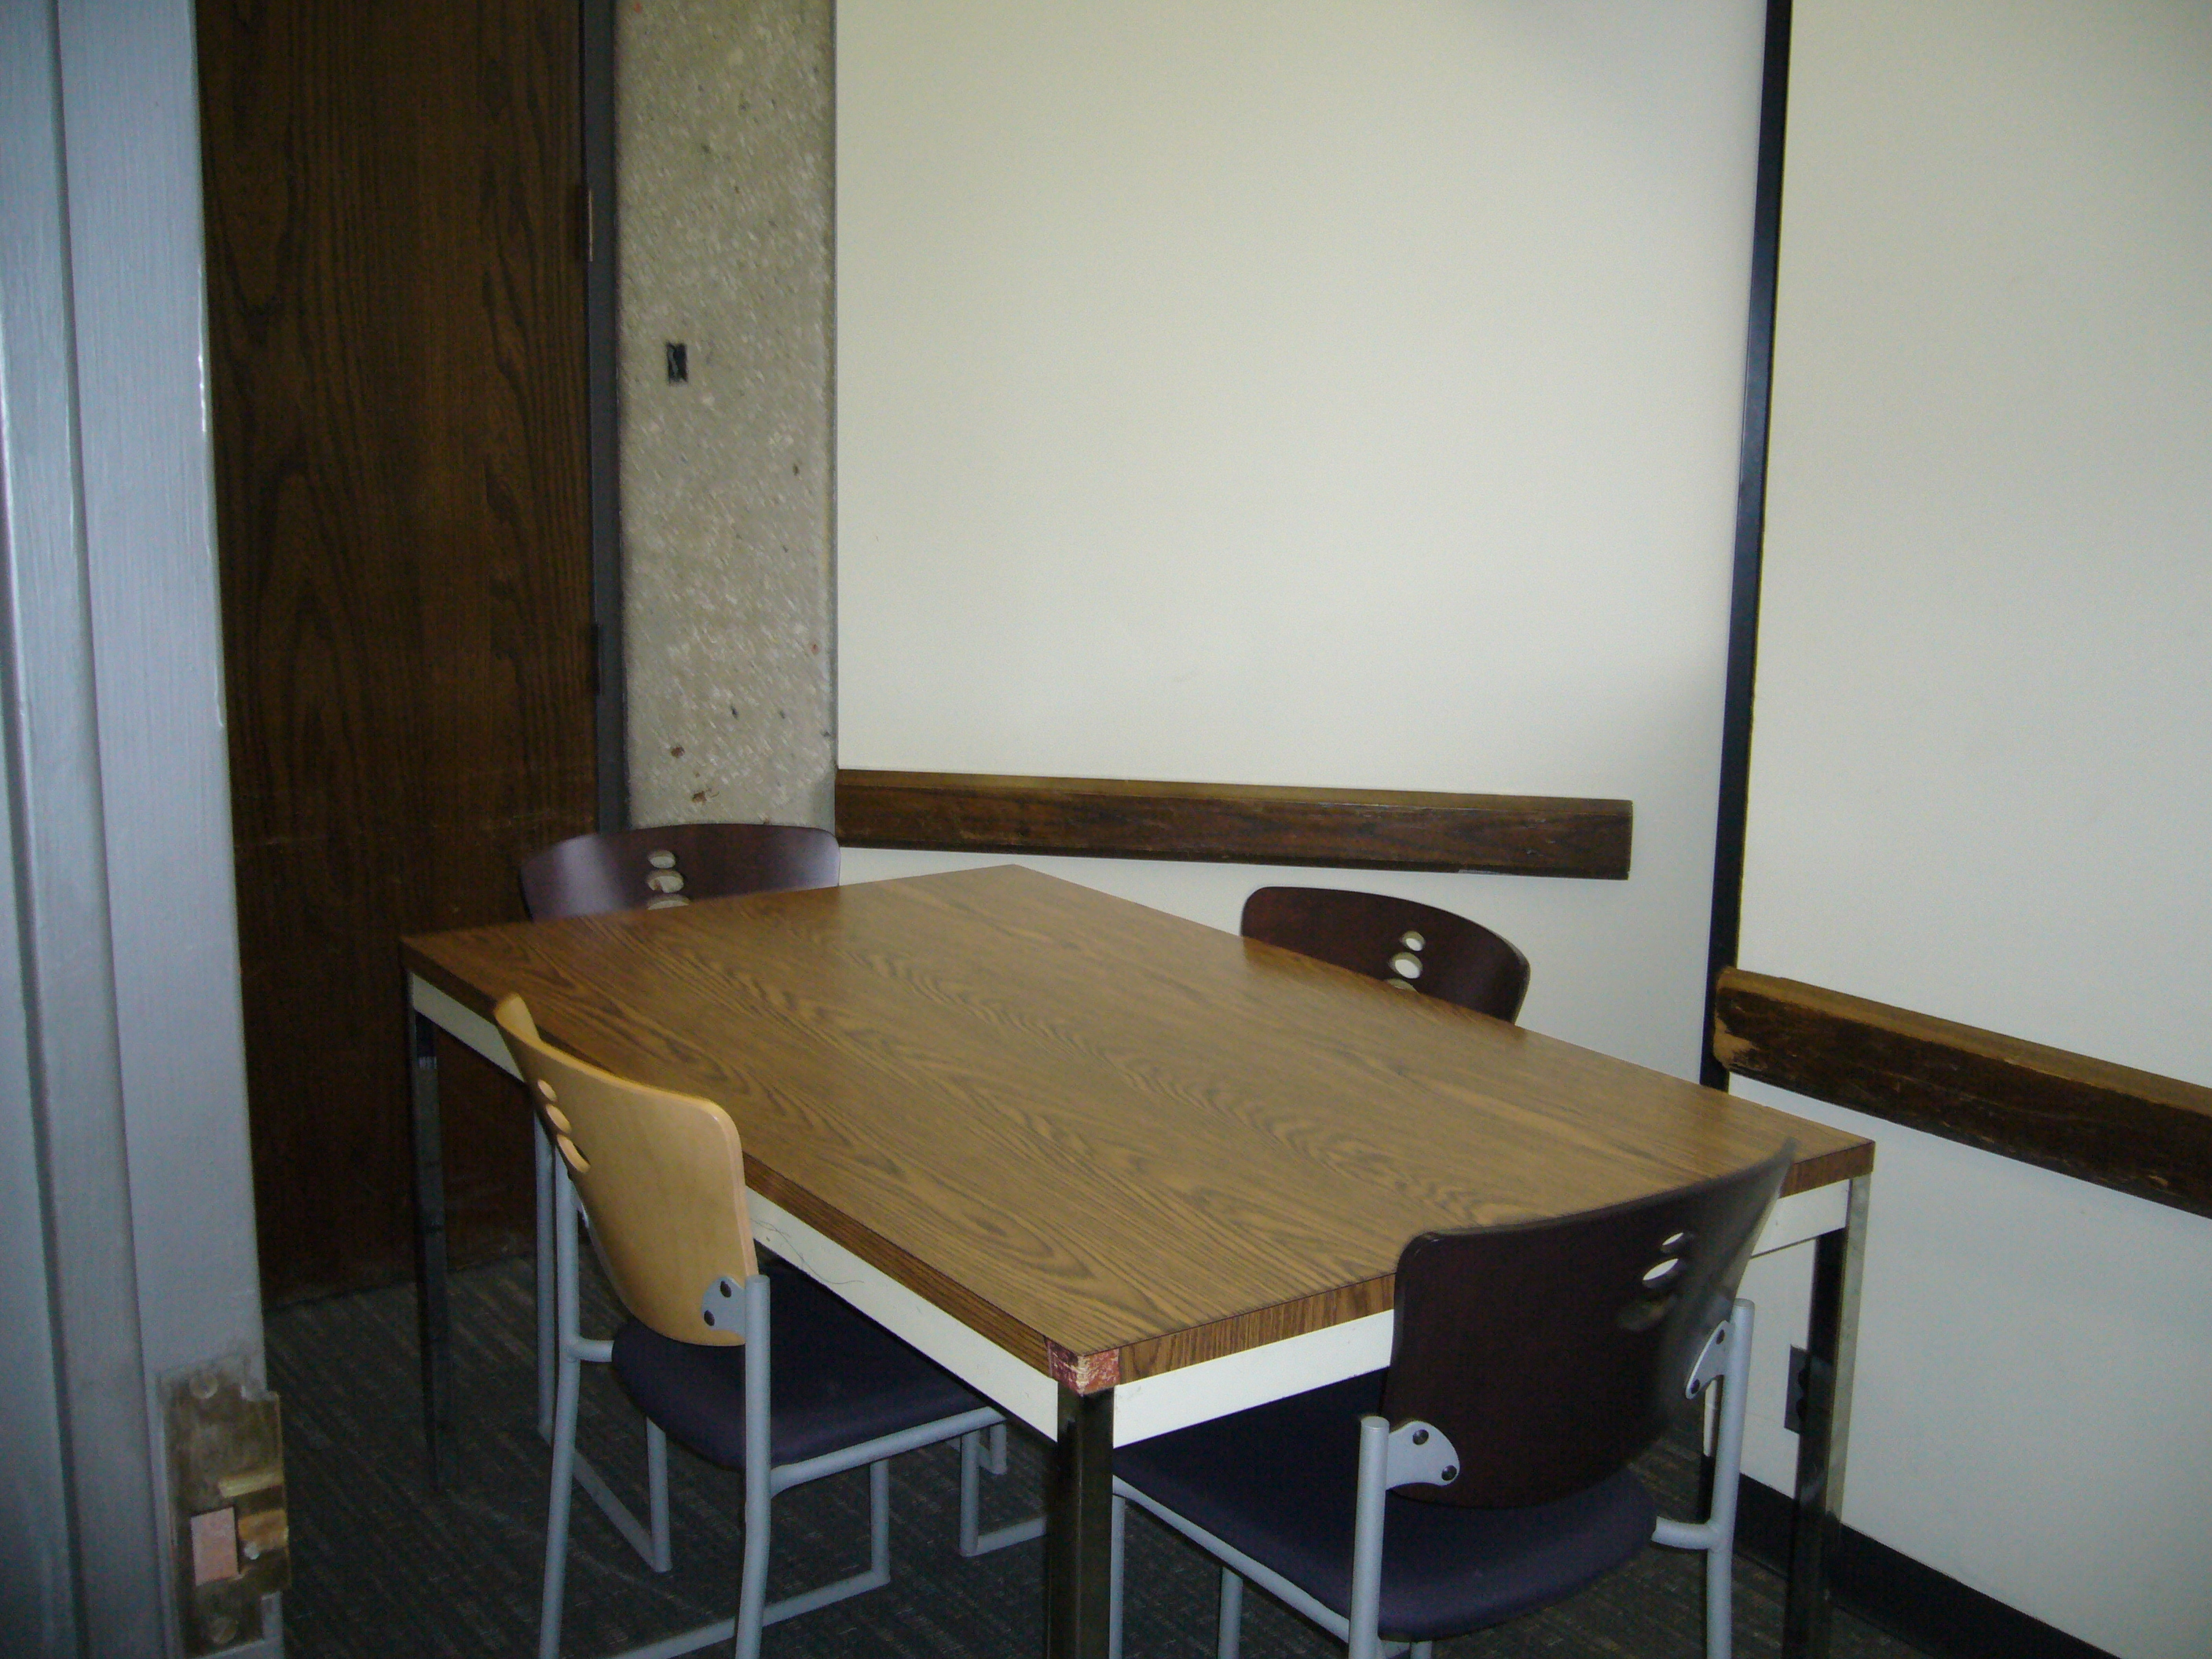 Bierce Library Room 277A